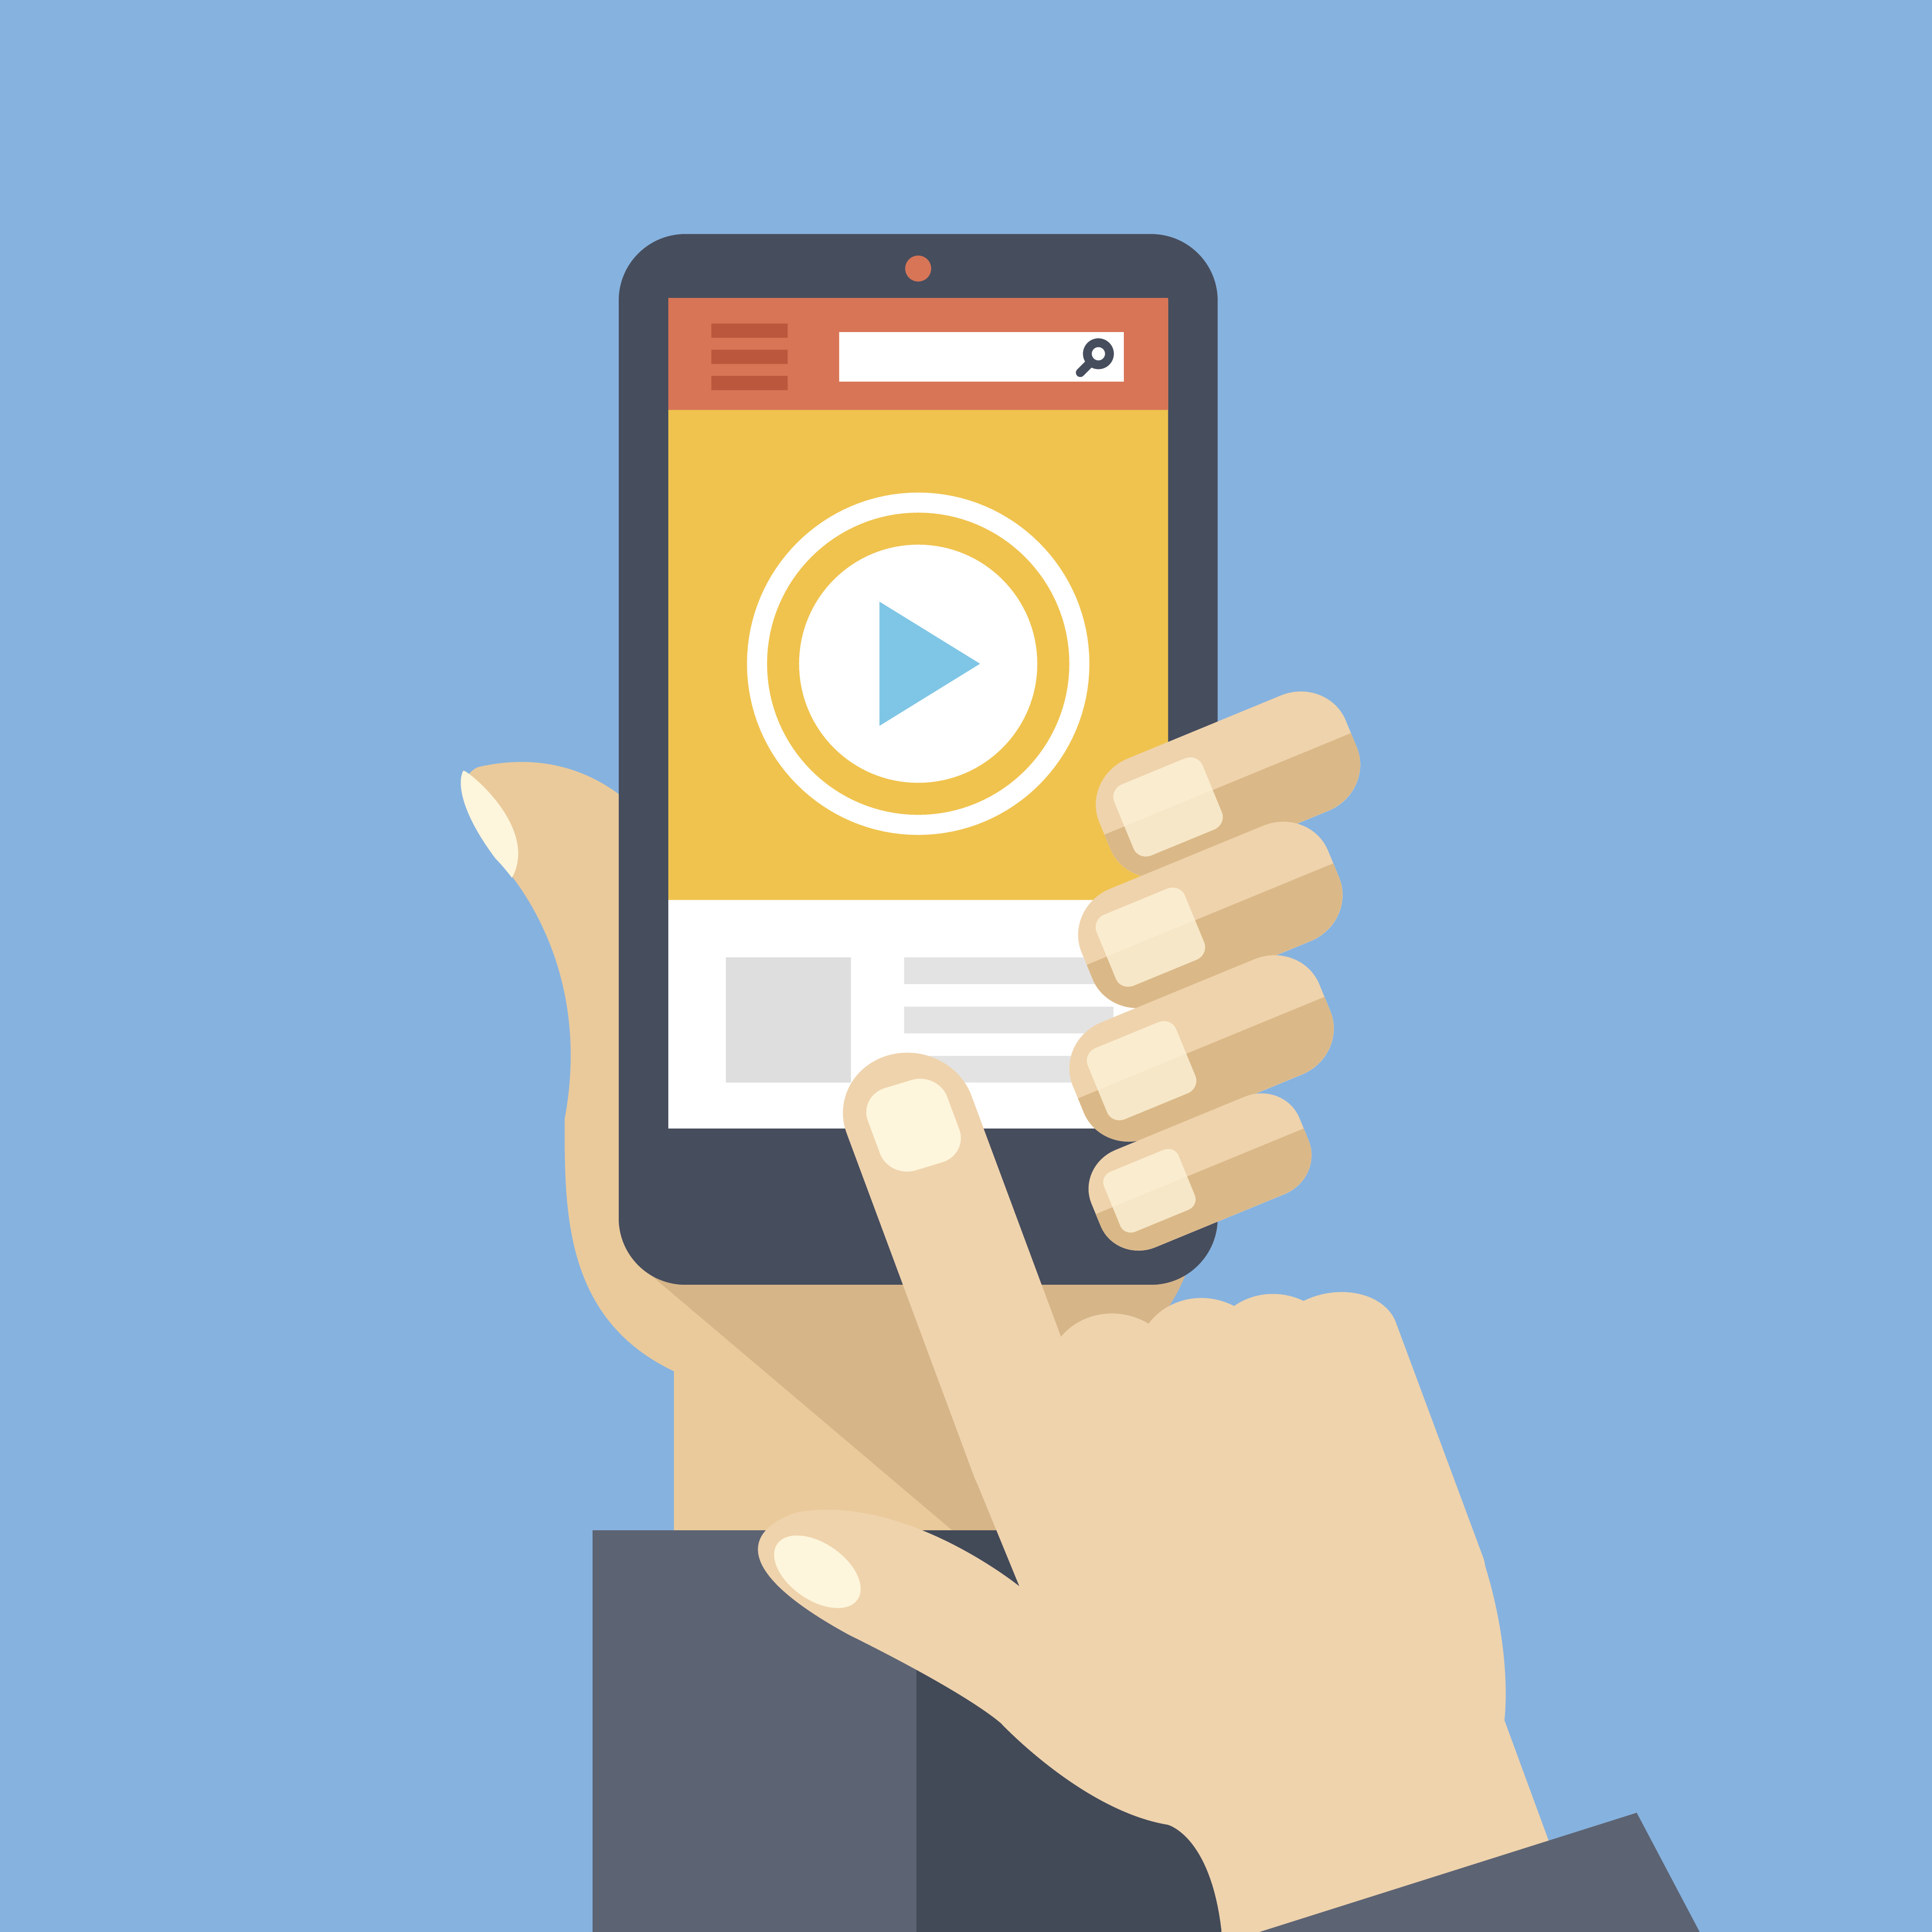 Video app on smartphone screen. Watch and share digital content. Hand holds smartphone, finger touch screen. Modern concept for web banners, web sites, infographics. Flat design vector illustration